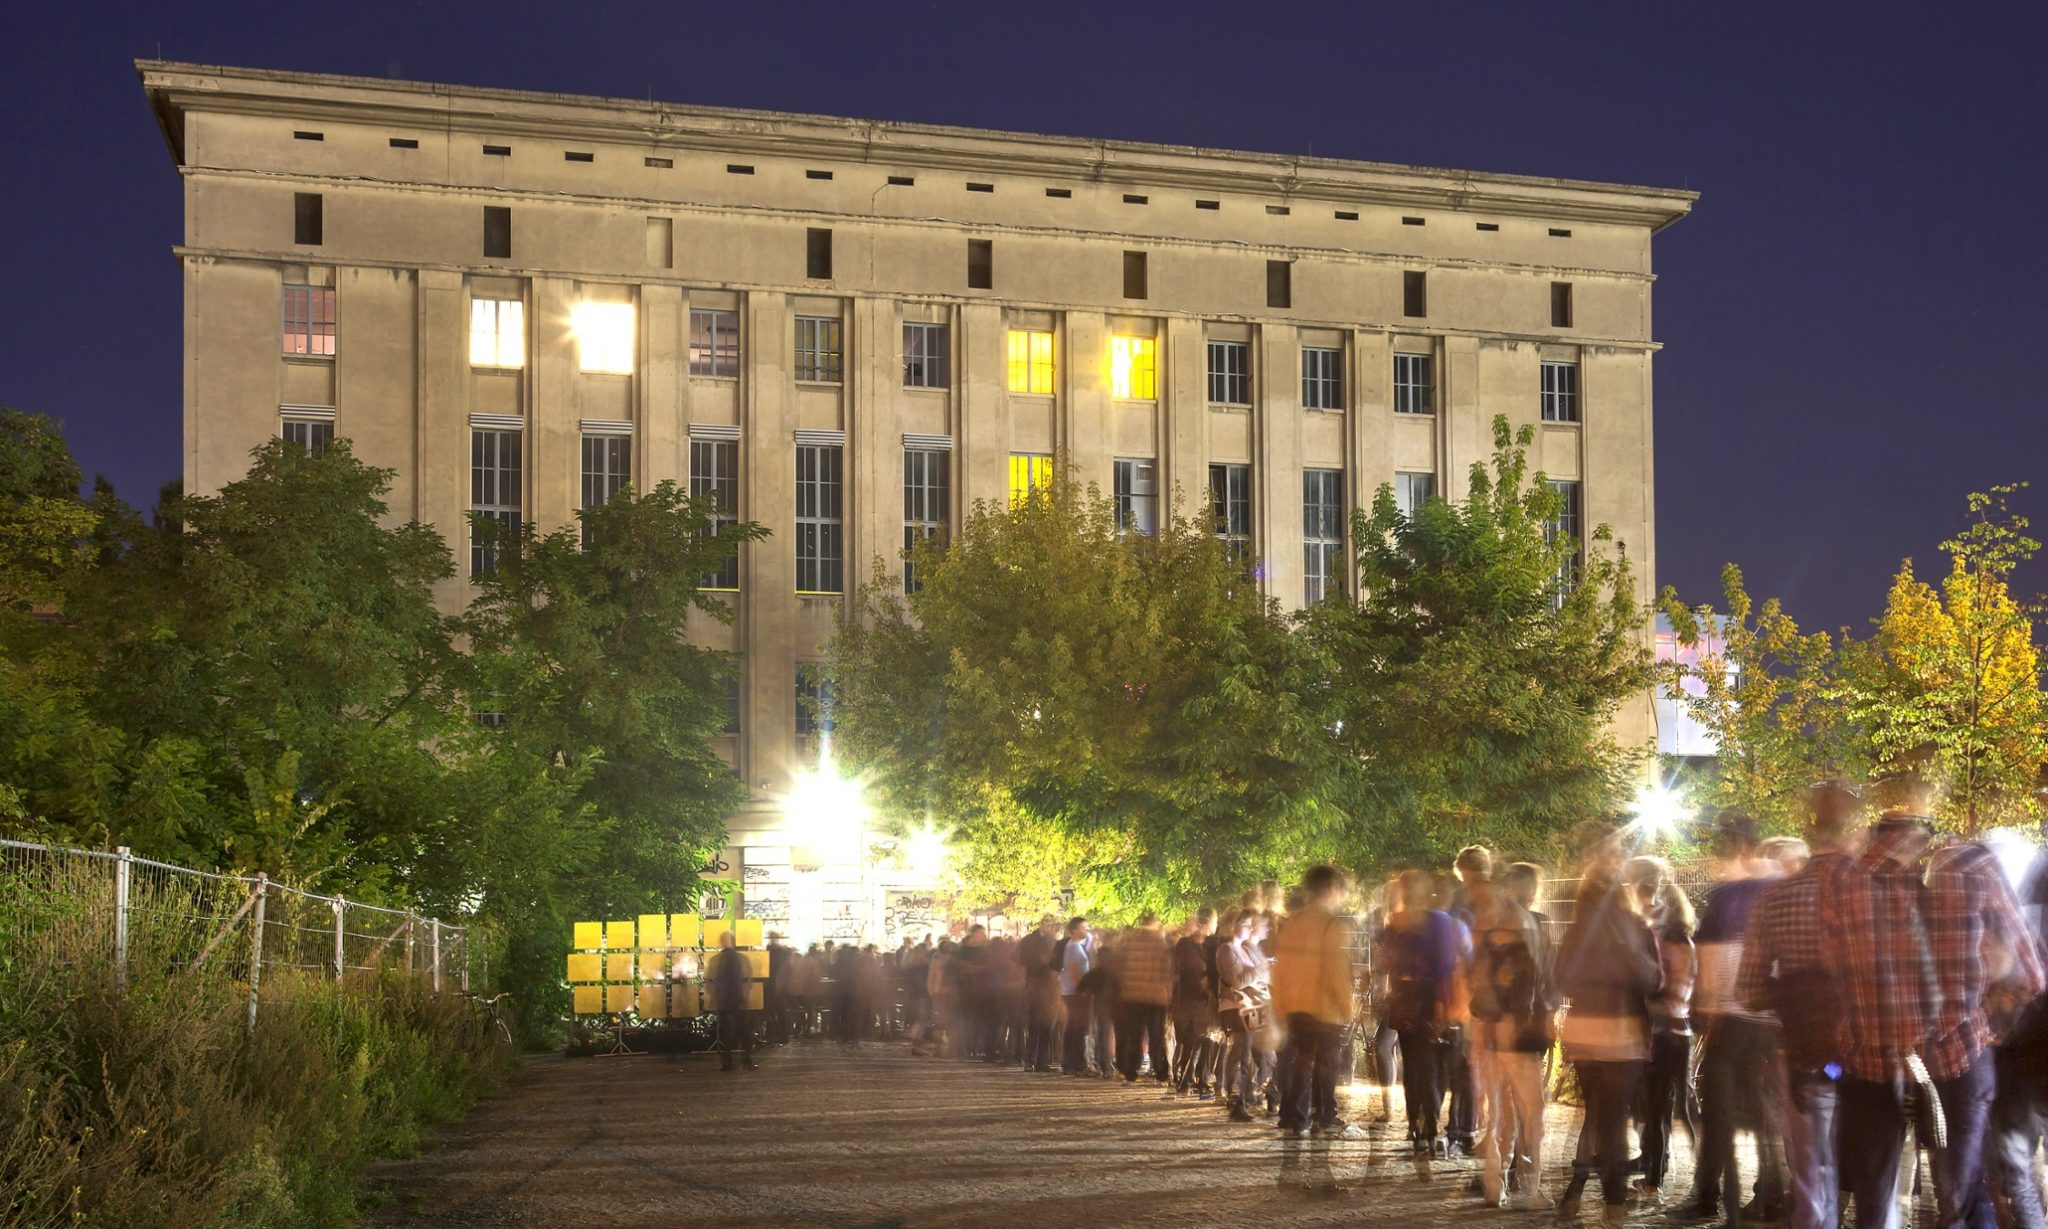 Mandatory Credit: Photo by Image Broker/REX (2227351a) Berghain Club with queue, Berlin, Germany VARIOUS